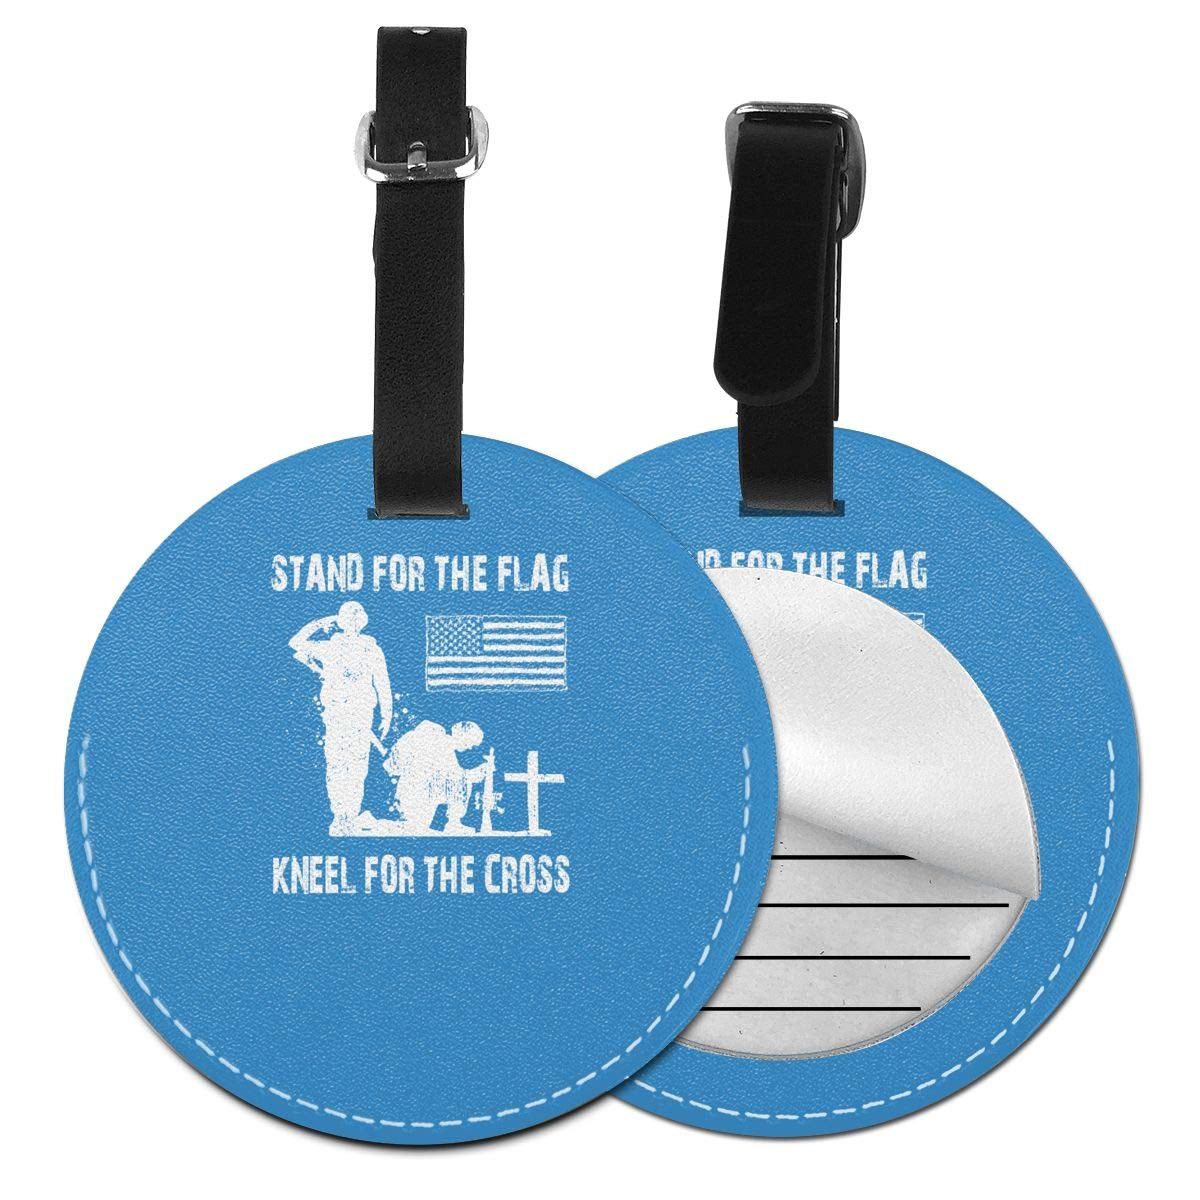 I Proudly Stand For The Flag And Kneel For The Cross Pu Leather Double Sides Print Round Luggage Tag Mutilple Packs 1pcs,2pcs,4pcs